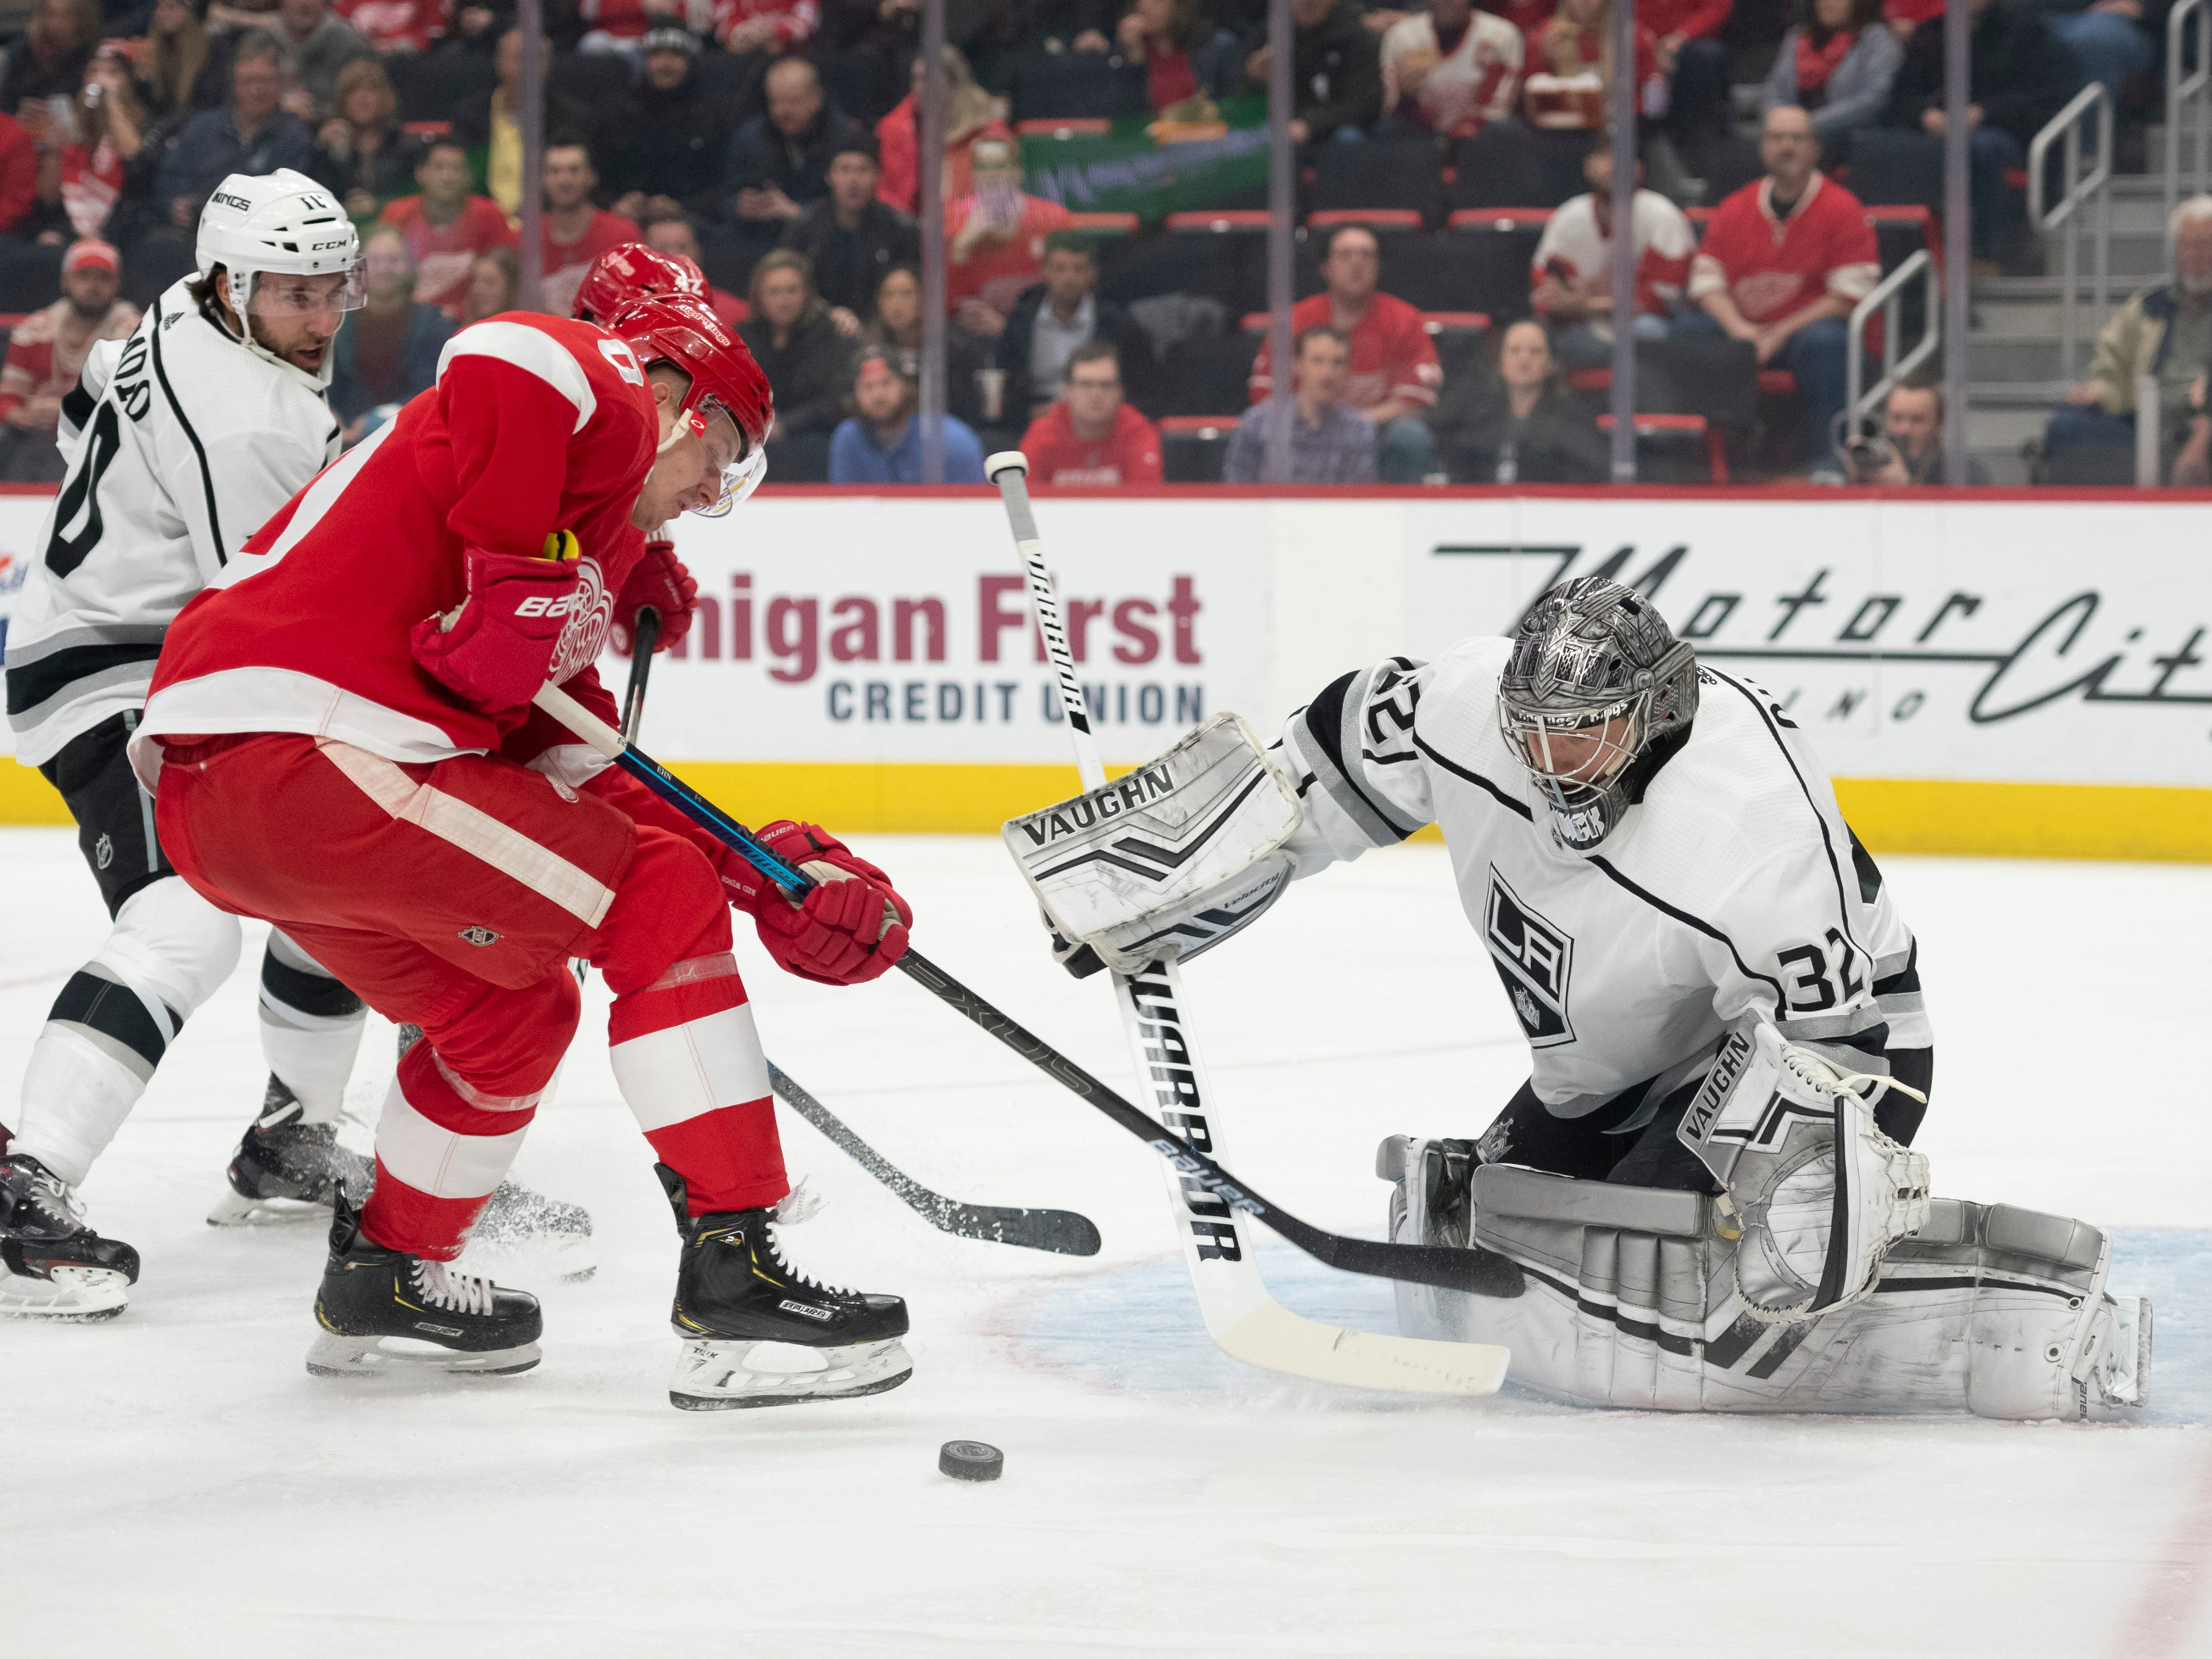 Detroit center Christoffer Ehn tries to slip the puck past Los Angeles goaltender Jonathan Quick in the first period.